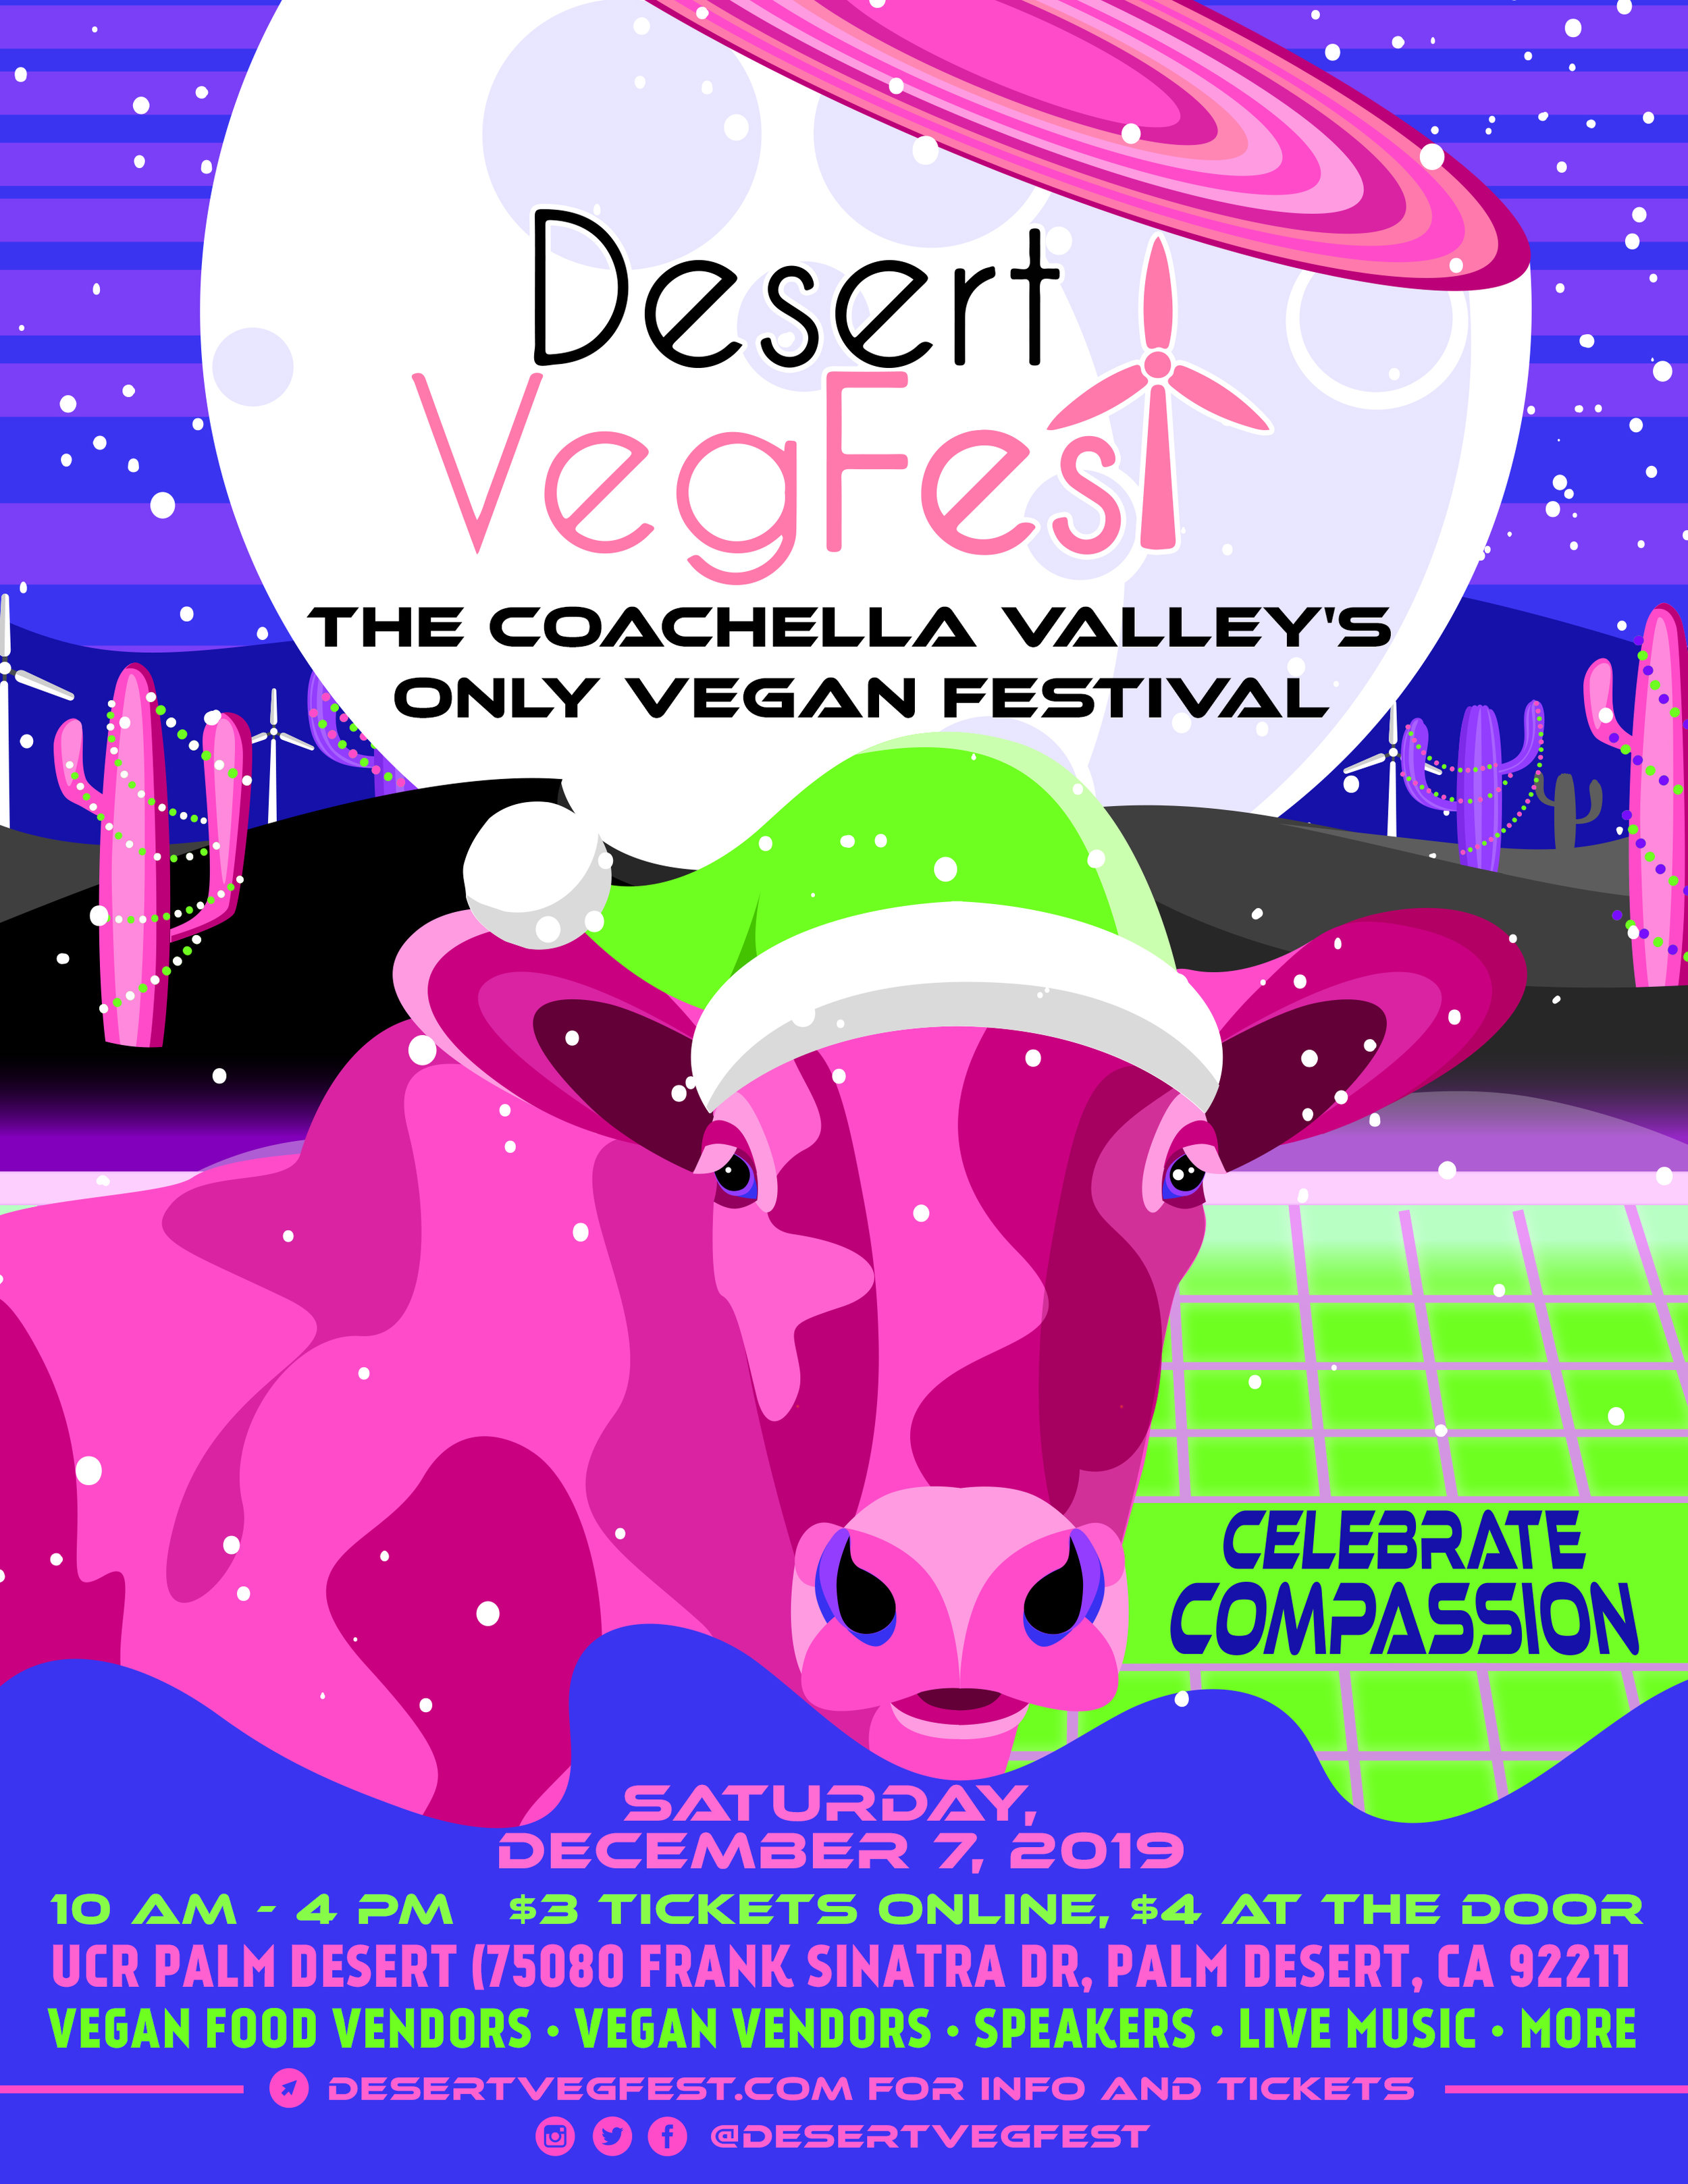 GREAT TO SEE YOU AGAIN! - JOIN US (again) ON SATURDAY, DECEMBER 7TH FOR DESERT VEGFEST (#VEGCHELLA), AN ALL VEGAN FESTIVAL FEATURING DELICIOUS FOOD POP-UPS & FOOD TRUCKS, VENDORS FOR HOLIDAY SHOPPING, FILMS, INFORMATIVE SPEAKERS, MUSIC AND MORE! MAKE SURE TO RSVP ON FACEBOOK AND SHARE WITH ALL OF YOUR FRIENDS & FAMILY